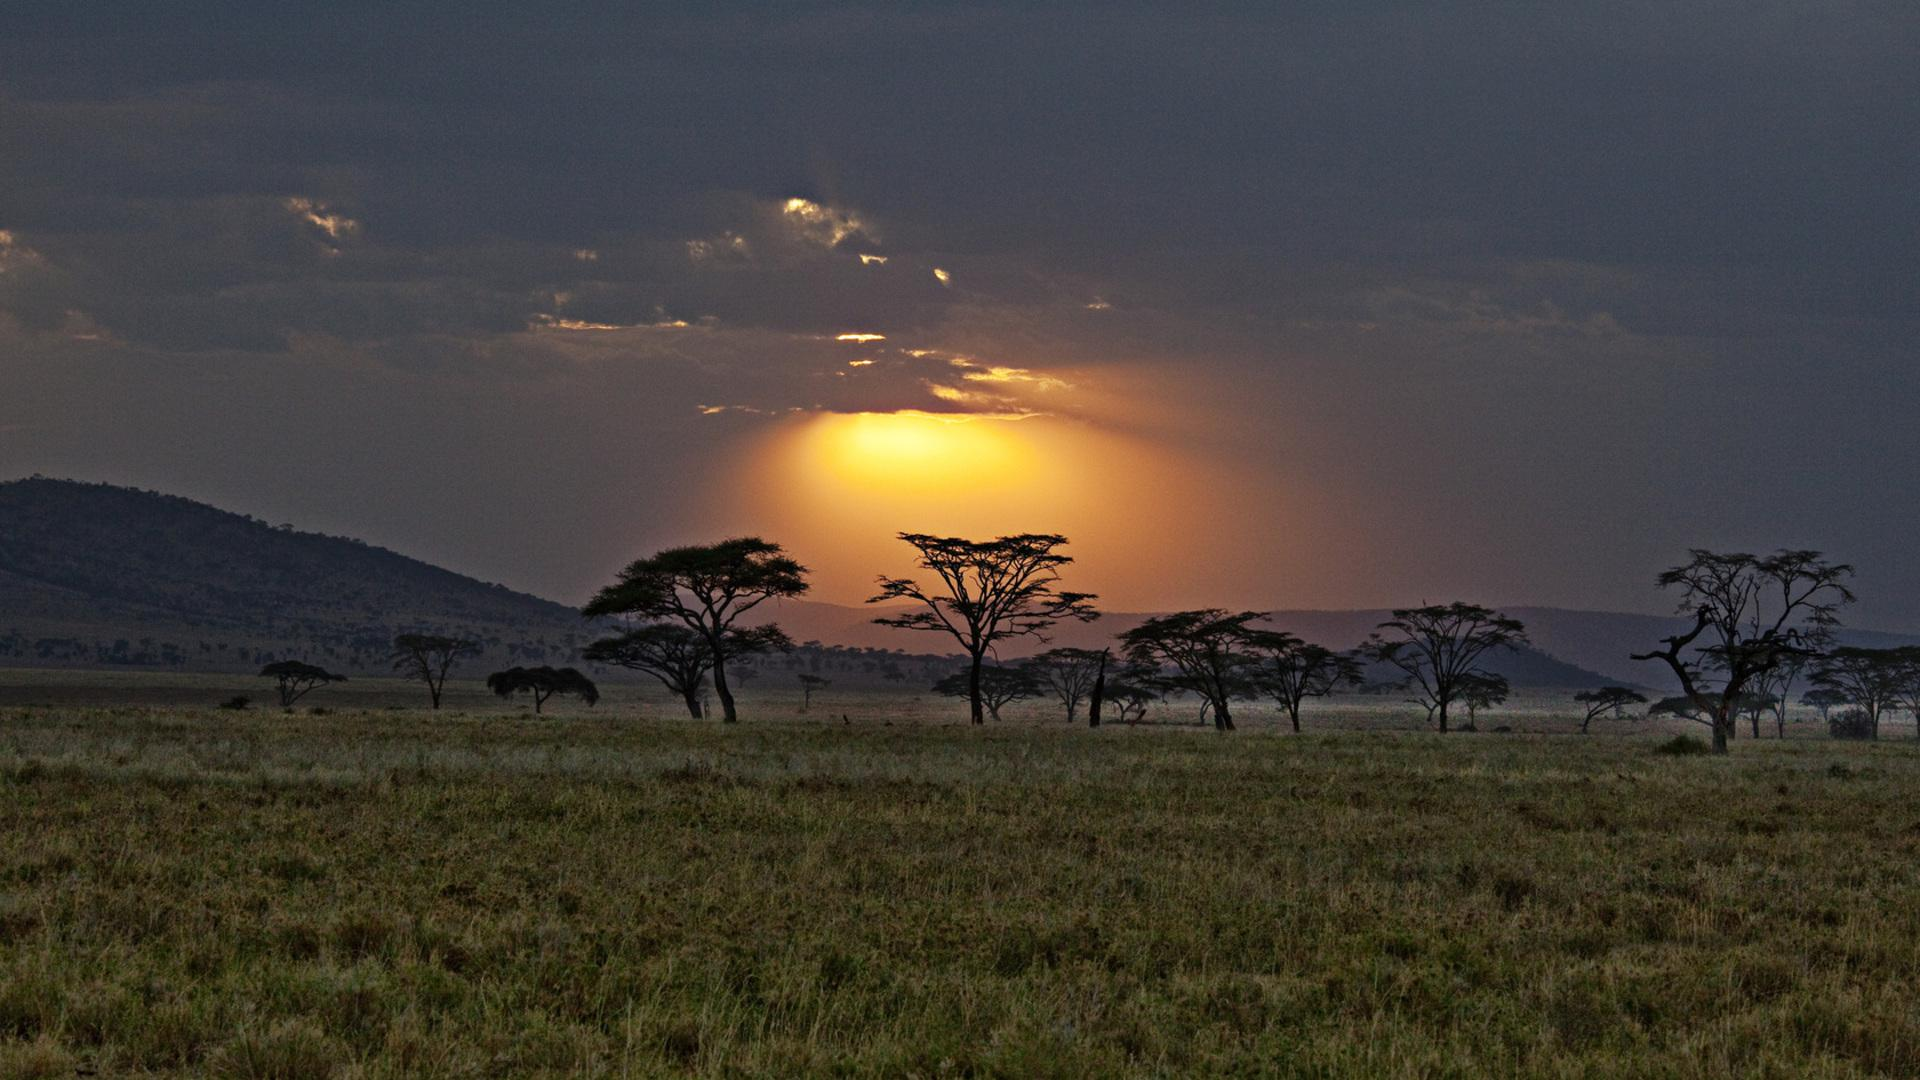 Cloudy sunset over the savannah in kenya HQ WALLPAPER - (#107956)